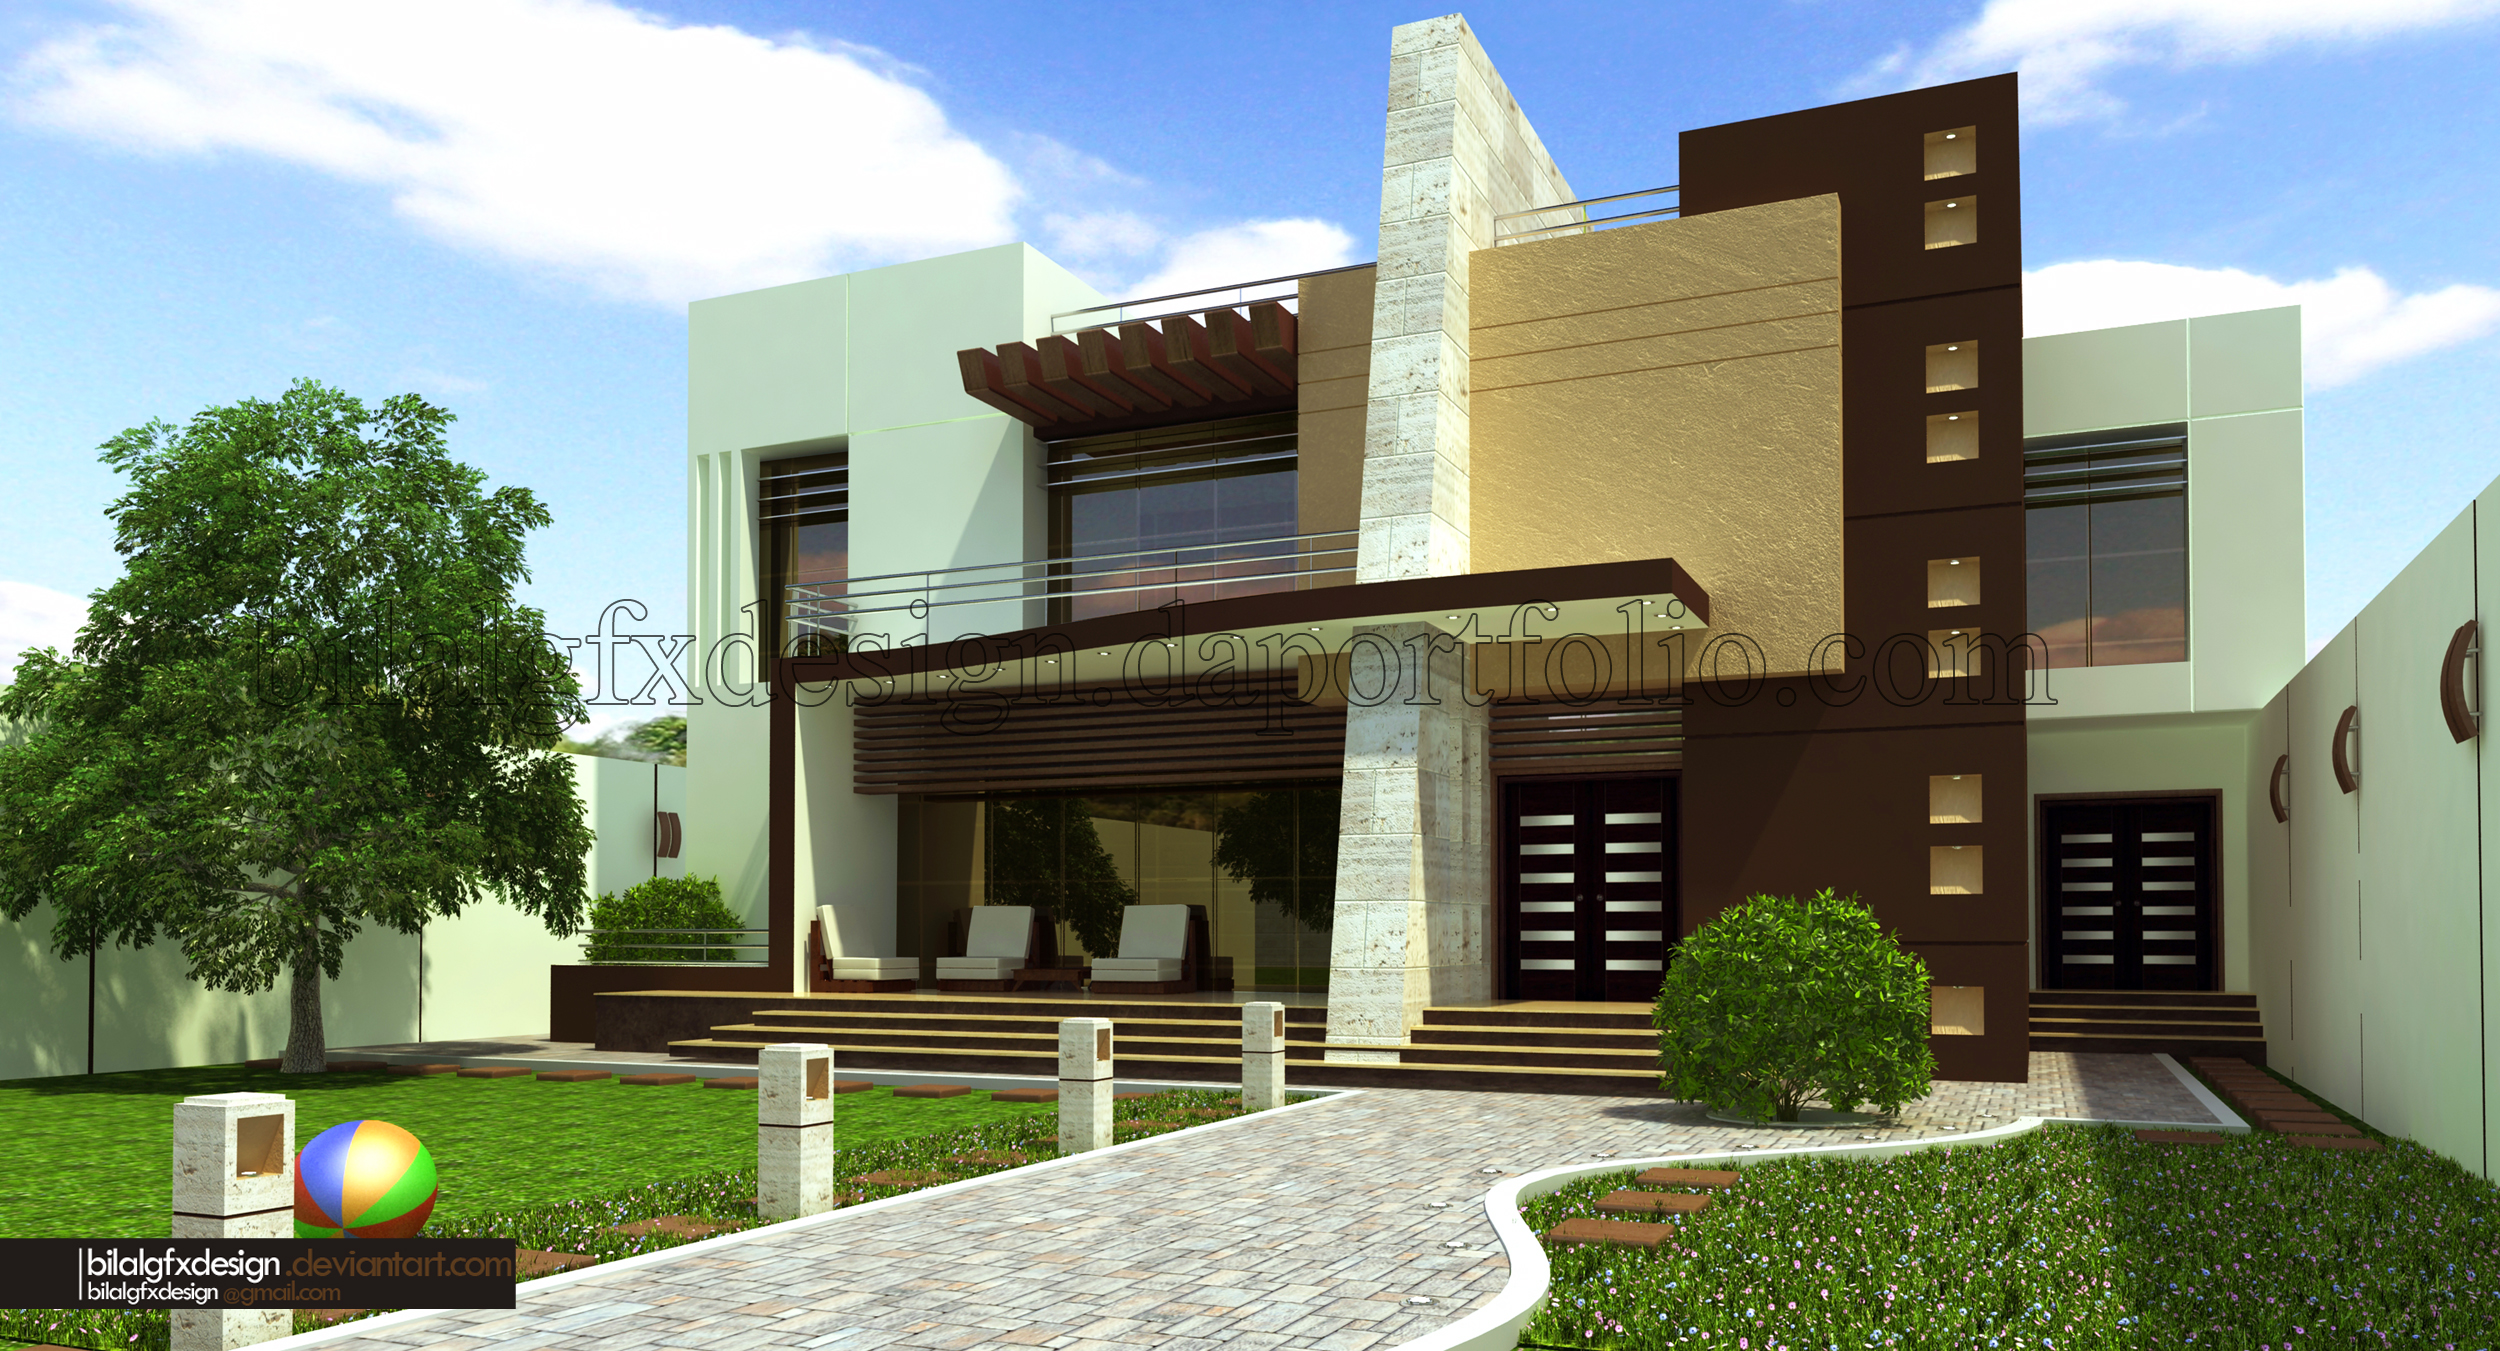 Modern villa 1 by bilalgfxdesign on deviantart for Modern villa design